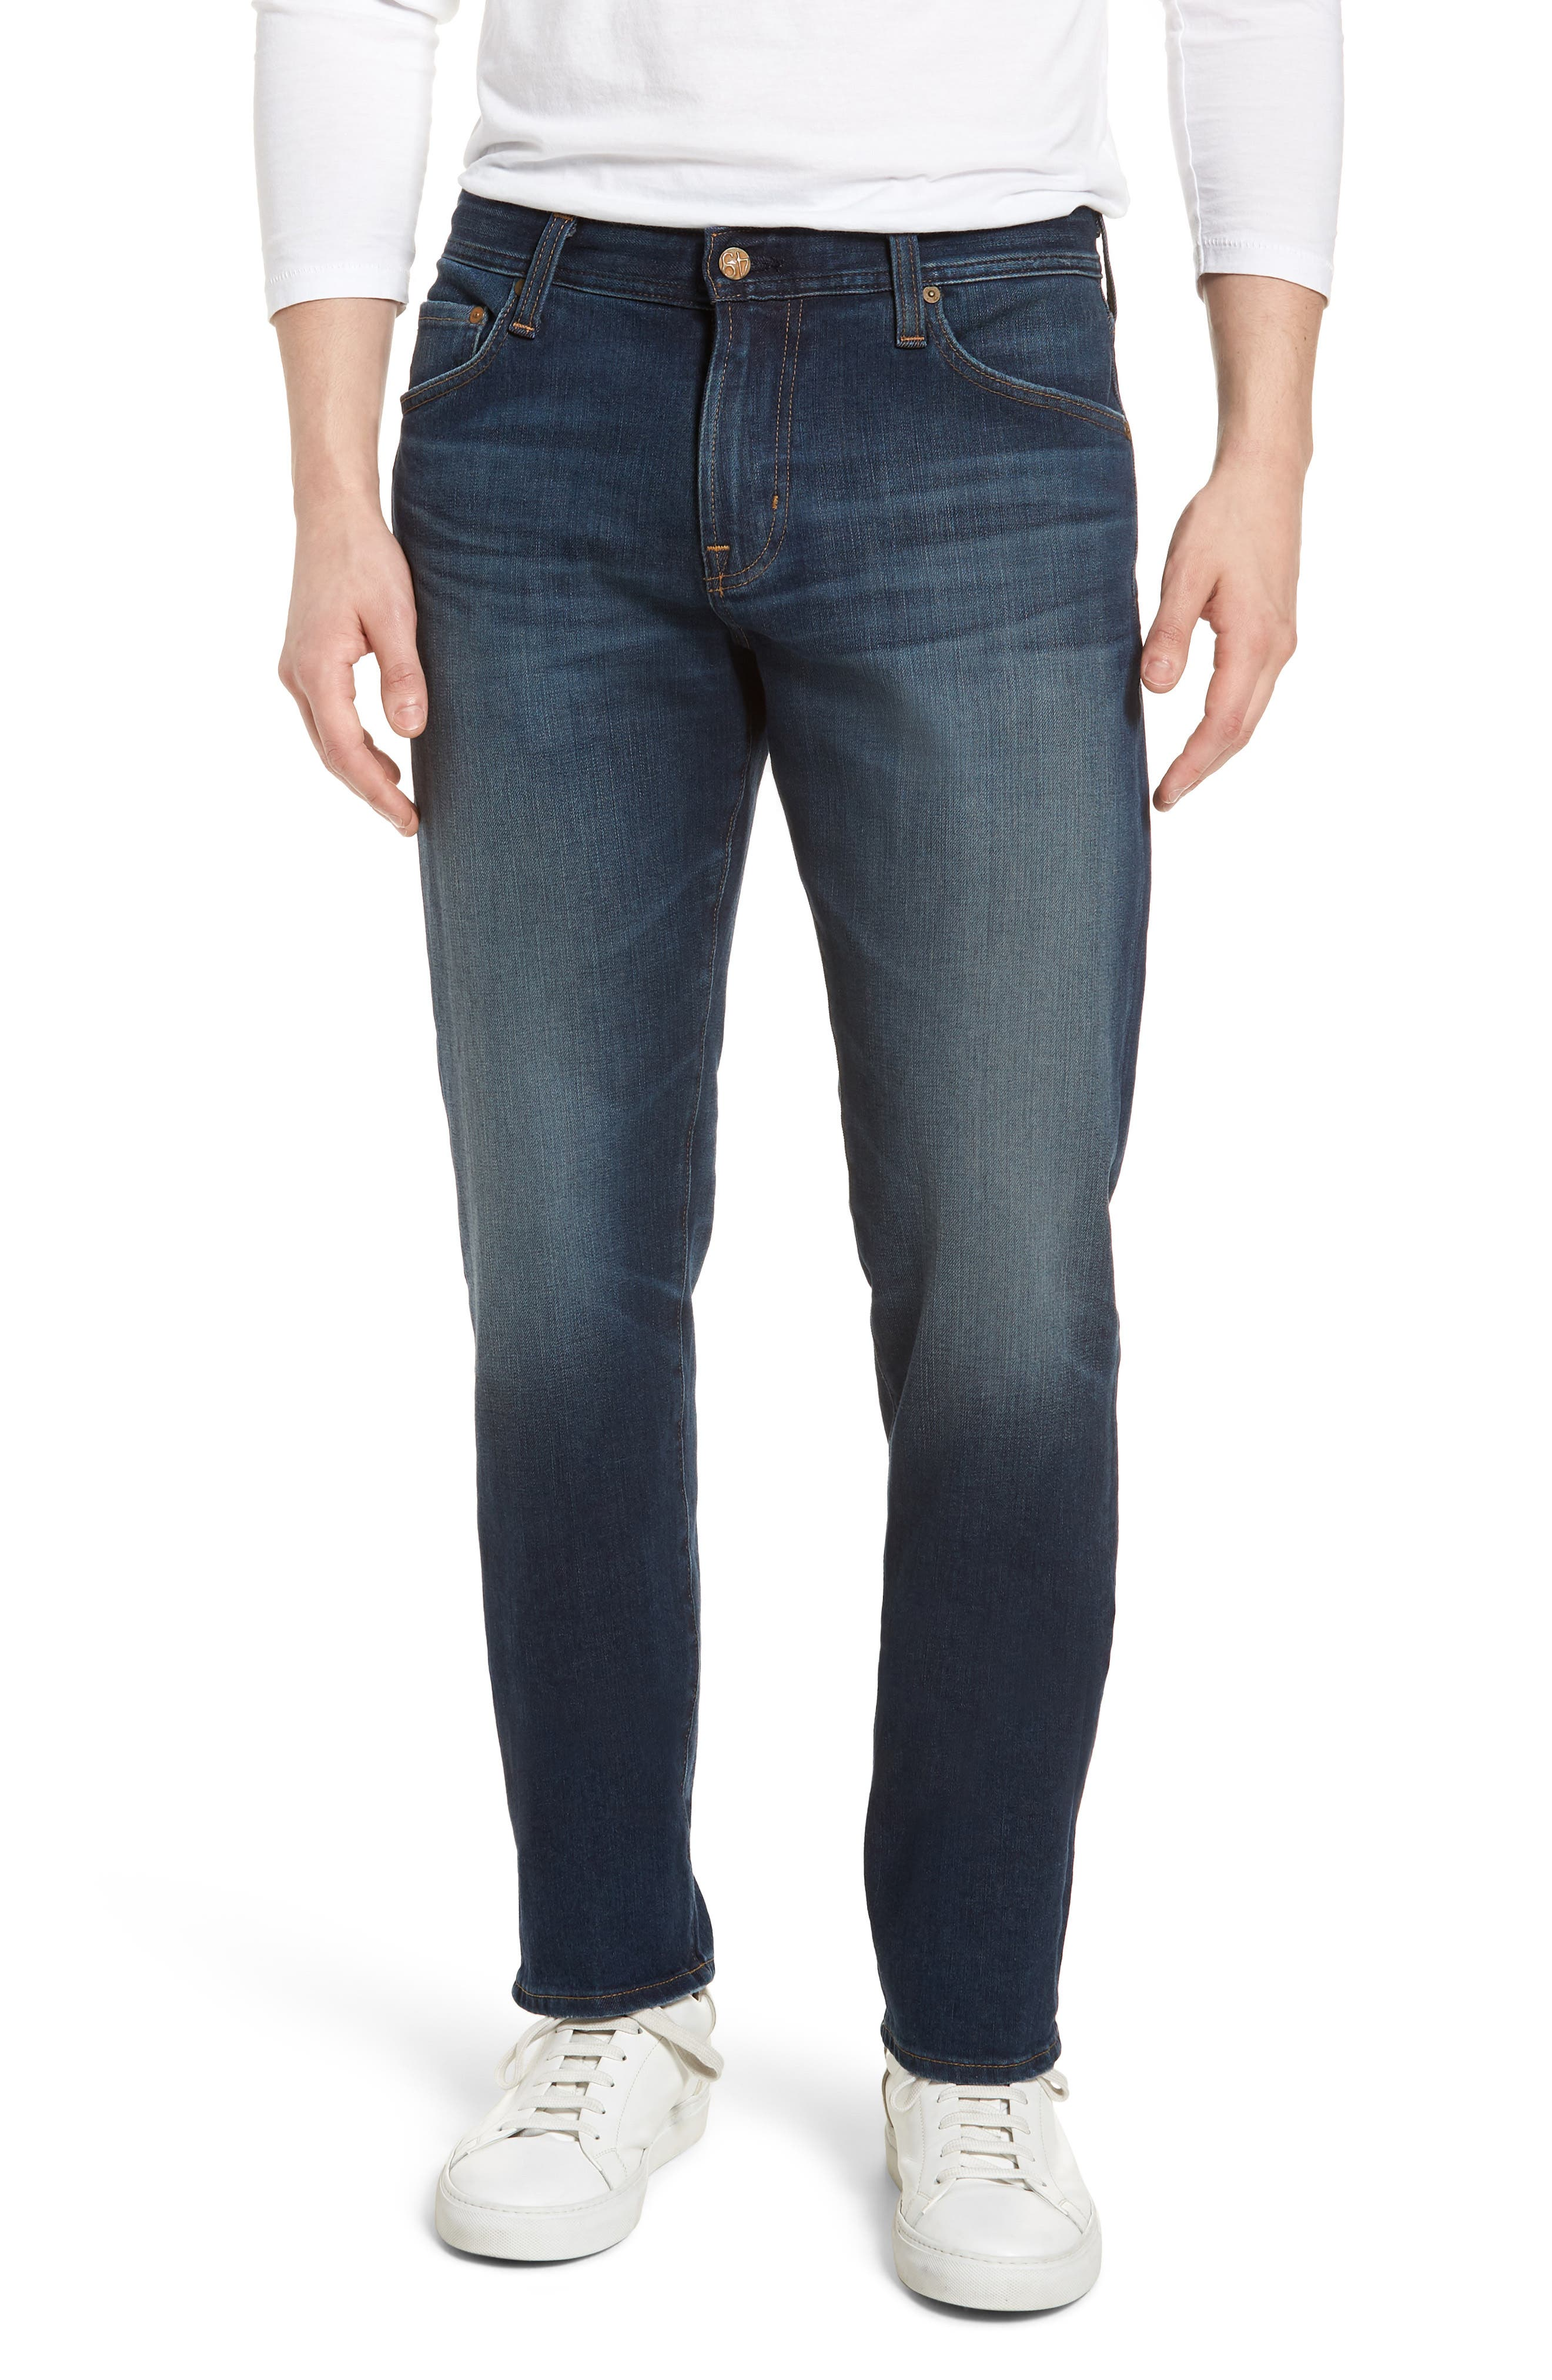 Graduate Slim Straight Leg Jeans,                             Main thumbnail 1, color,                             9 Years Faring